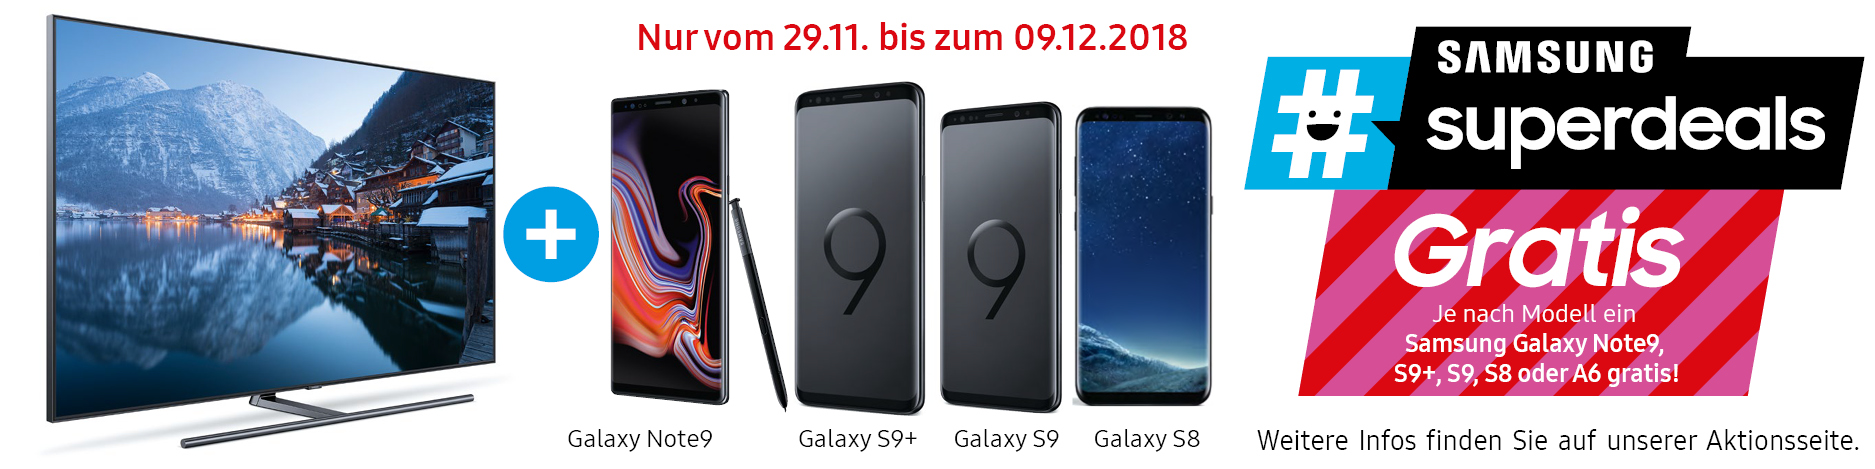 Samsung #superdeals Xmas Aktion 2018